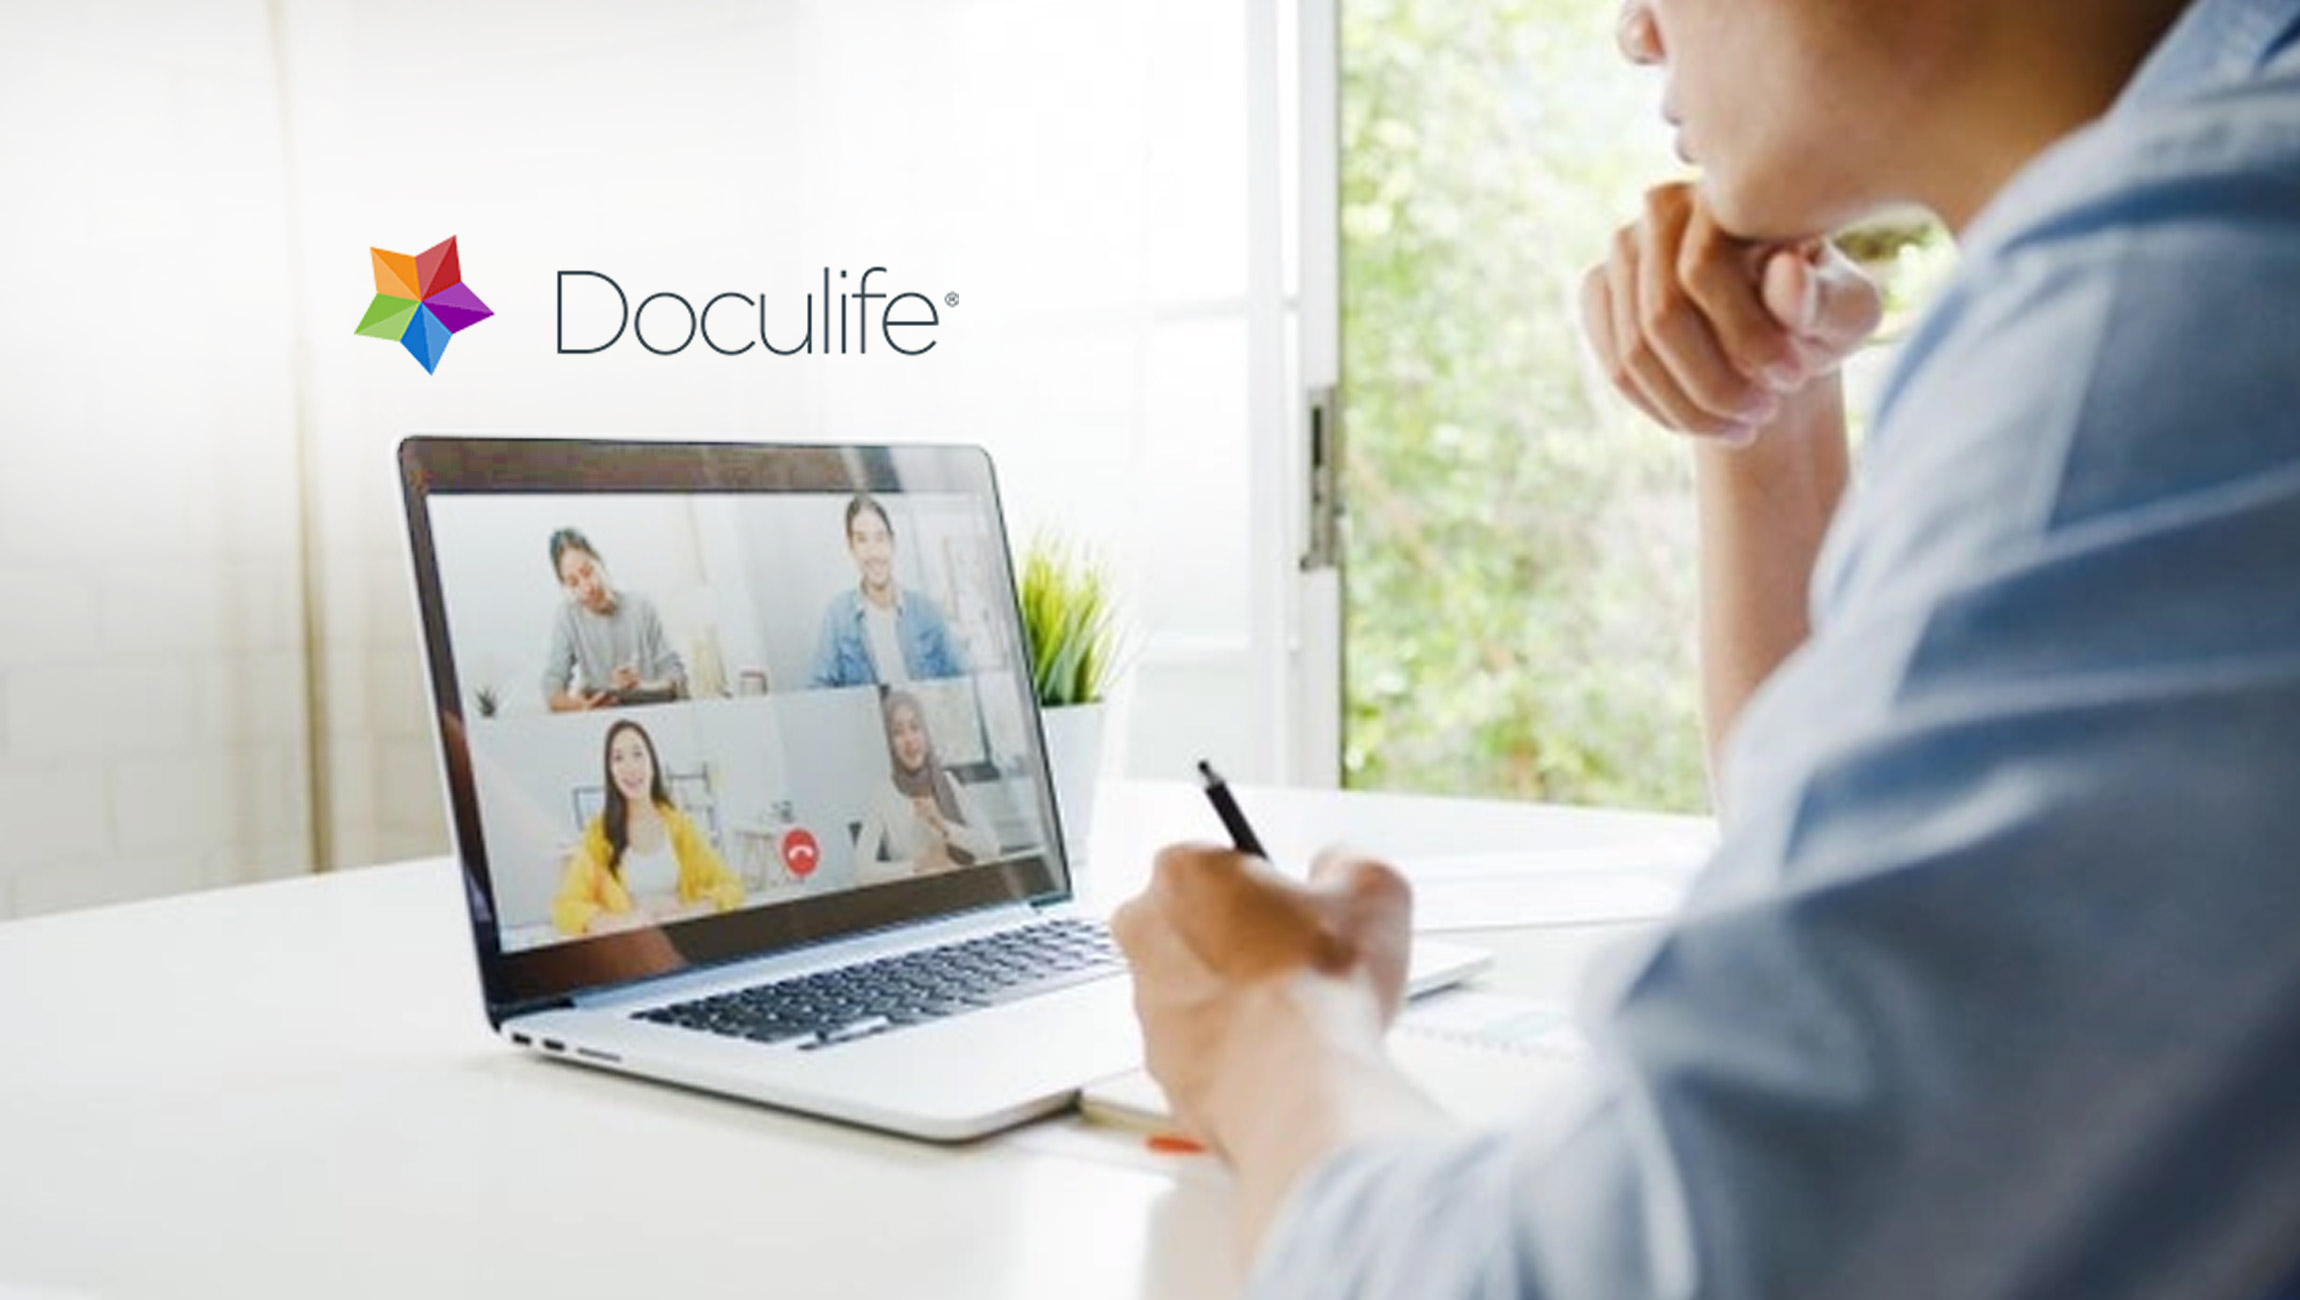 A-New-Era-in-Business-class-Sharing-and-Collaboration-from-Doculife_-Now-with-Built-in-Zoom-Meetings